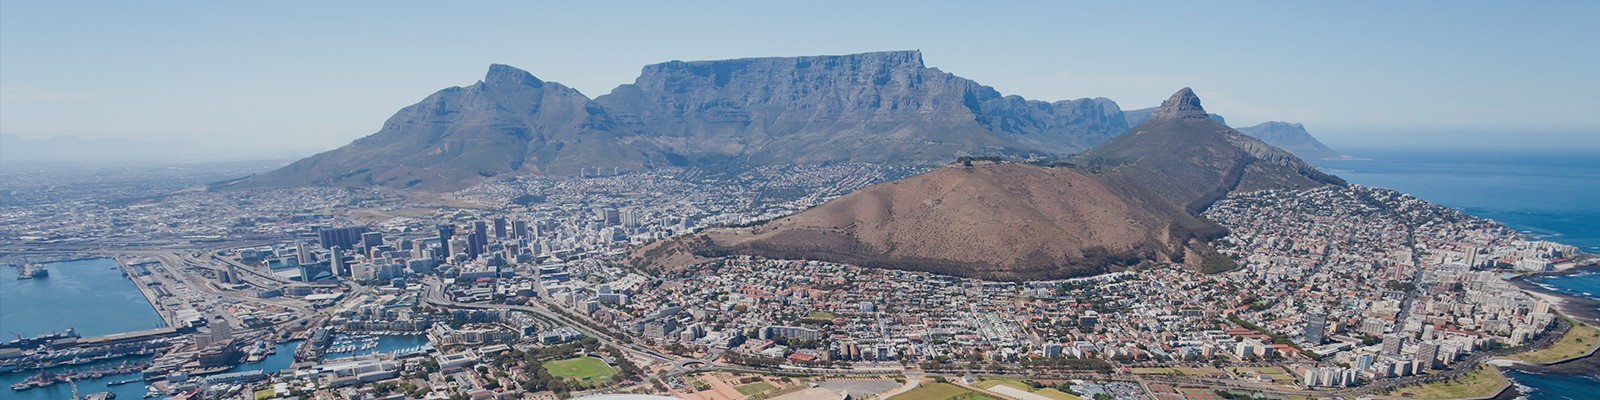 south africa honeymoon packages header